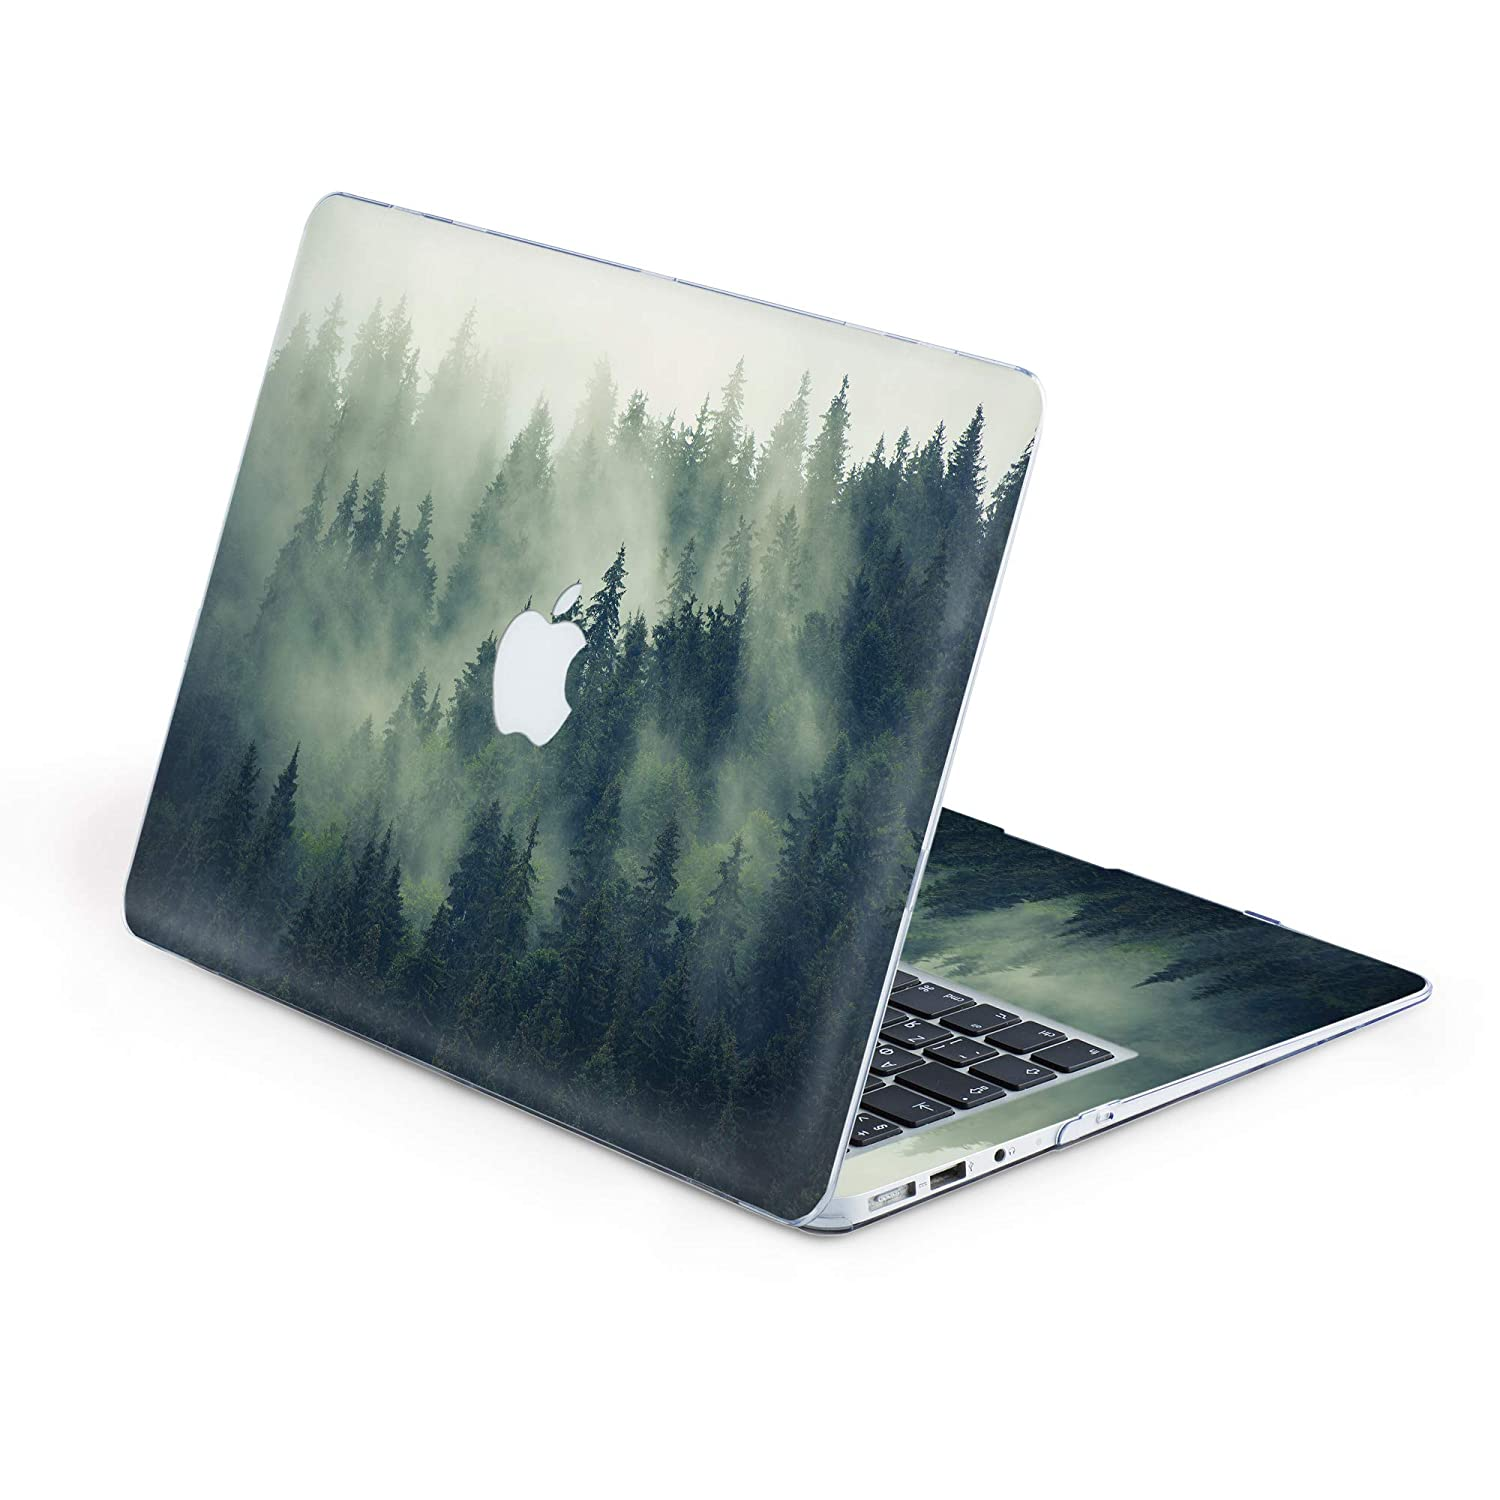 , Silent Foggy Forest Durable MacBook Case with Around Keyboard Vinyl Sticker Decal Nature Art Designed Protective Cover for MacBook Laptop Hard Case Air 13 A1369 /& A1466